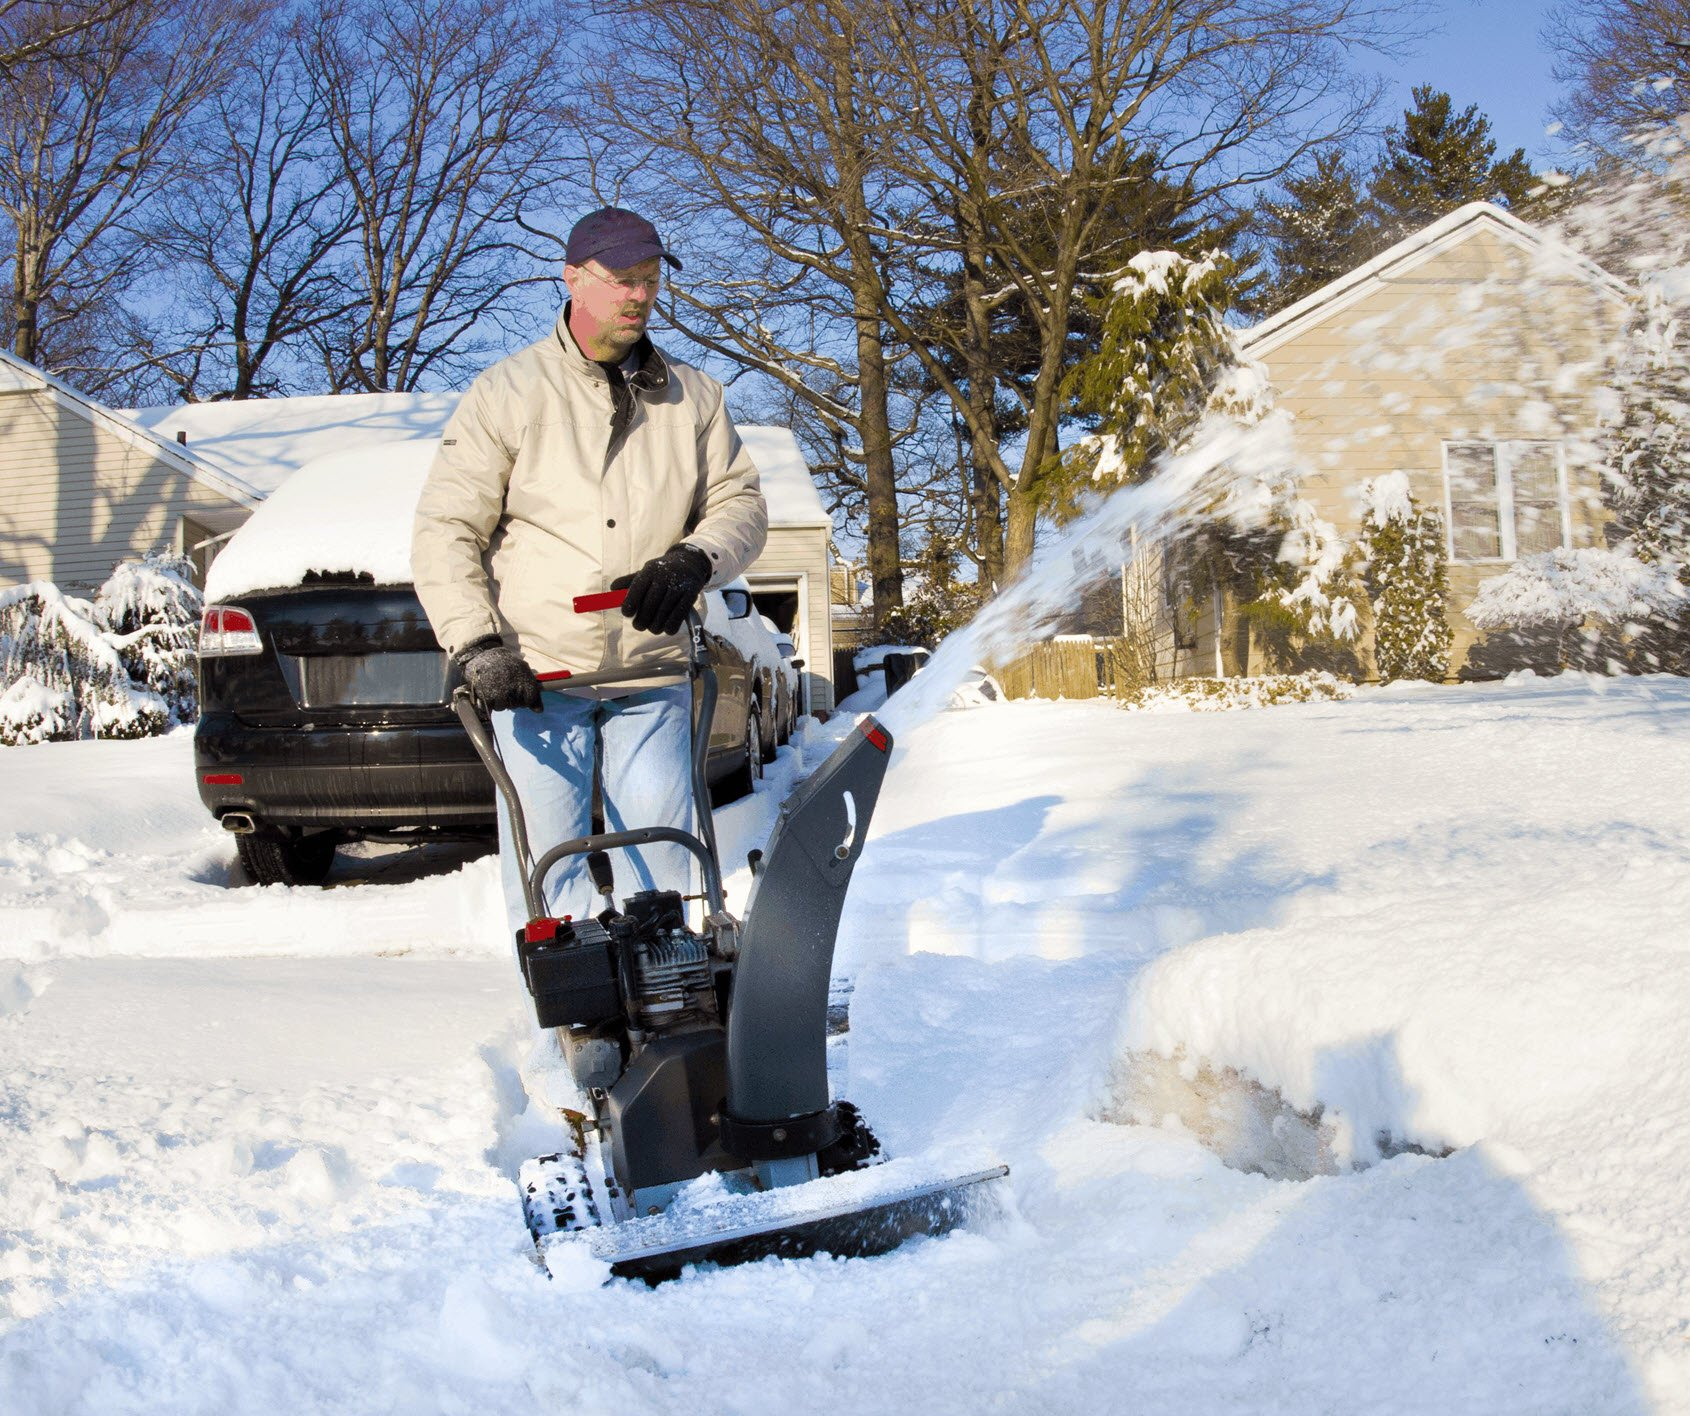 Residential Snow Removal in Kingsport, Johnson City, Bristol , Southwest Virginia, Haslett, Gray, Sullivan County, Hawkins County, and More